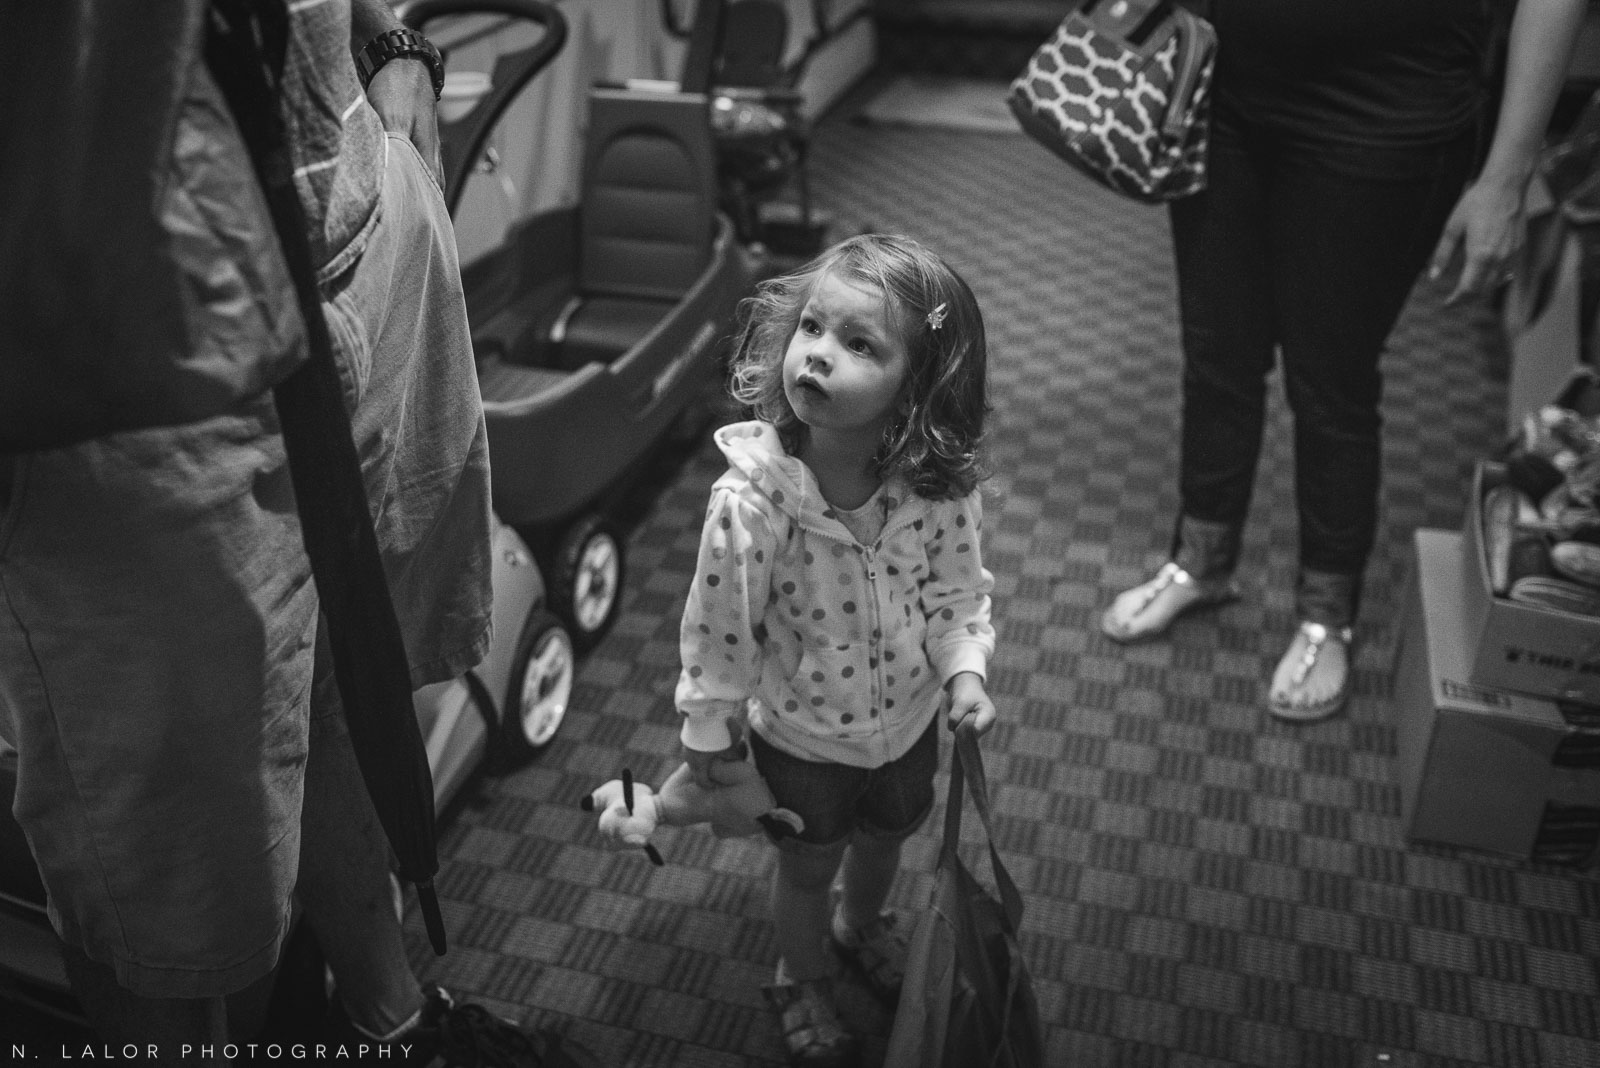 2-year old girl getting ready to step outside into the rain with her parents. Documentary photo by N. Lalor Photography.